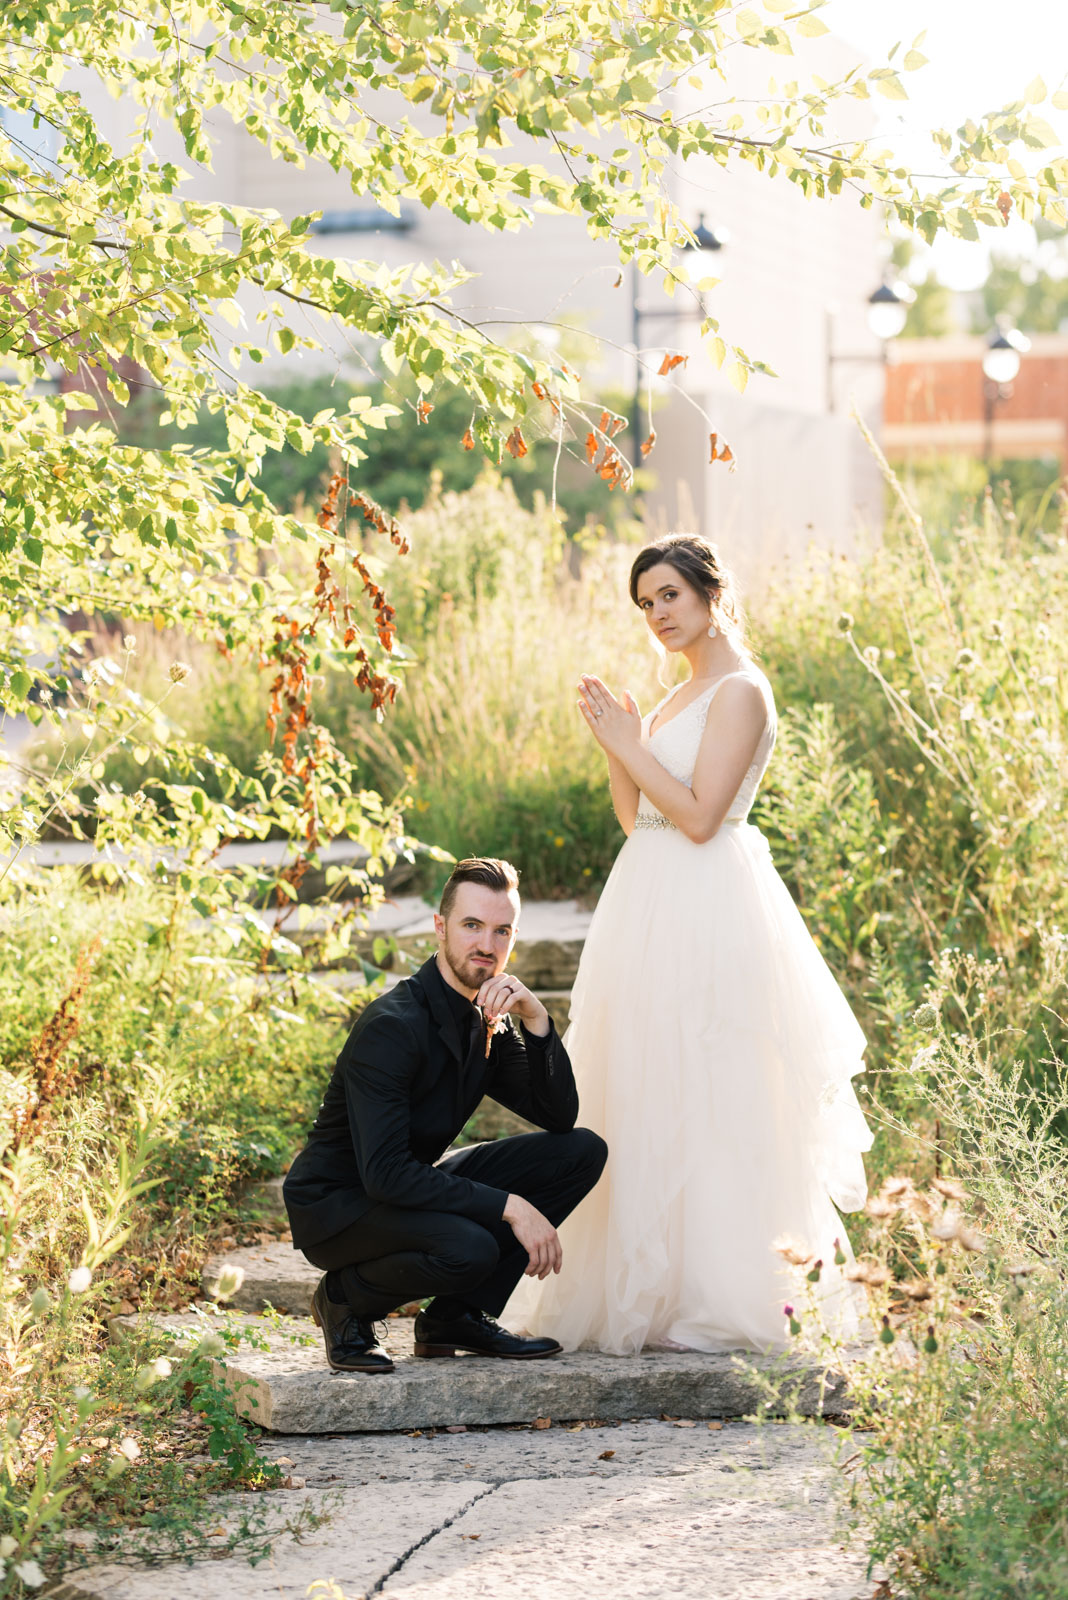 bride and groom band photo Coralville Marriott Hotel wedding venue